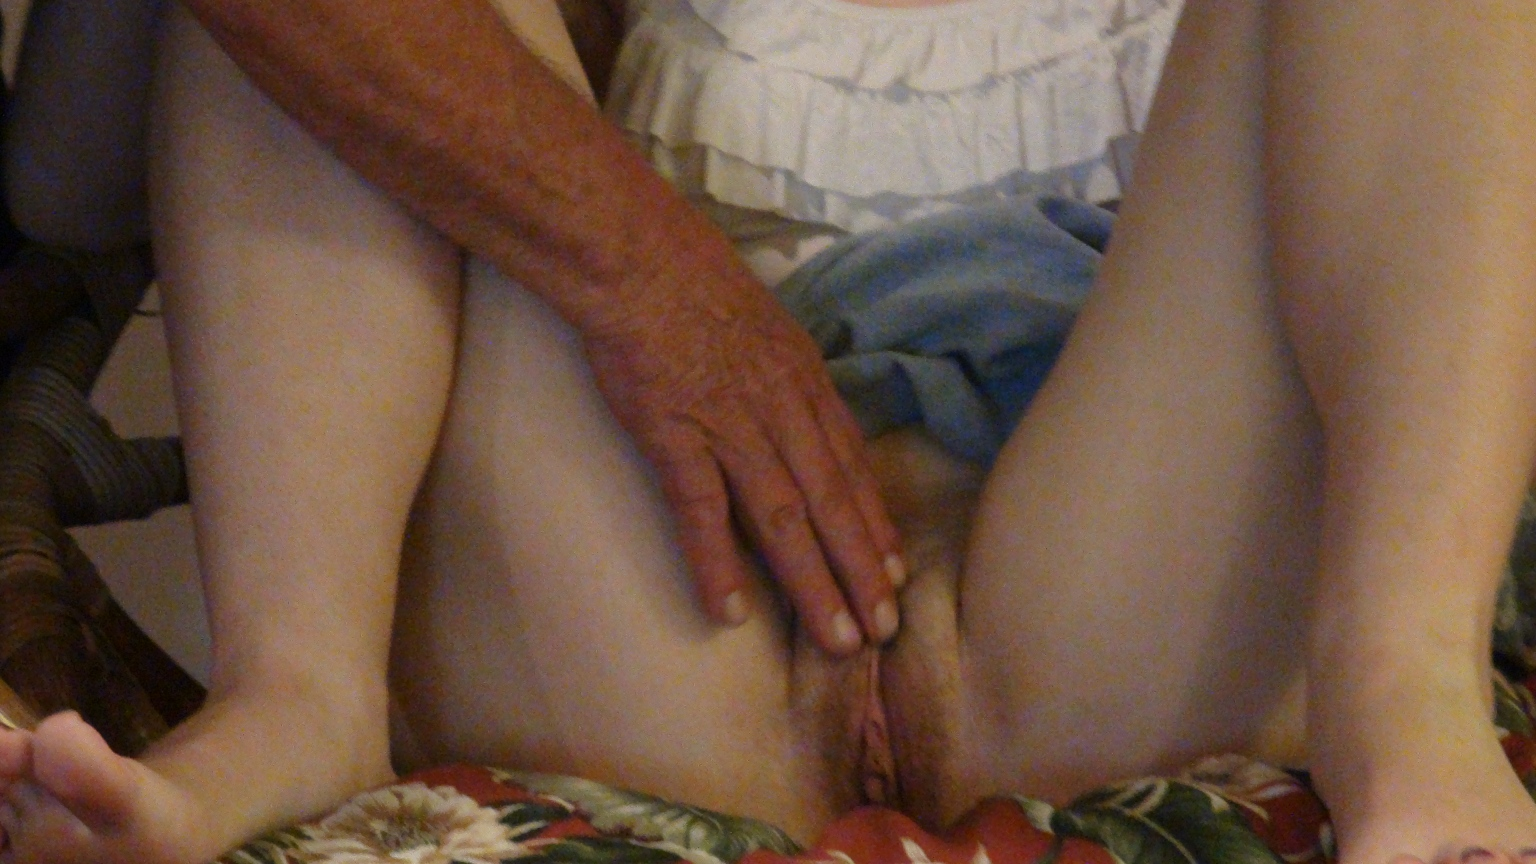 Female orgasm moans